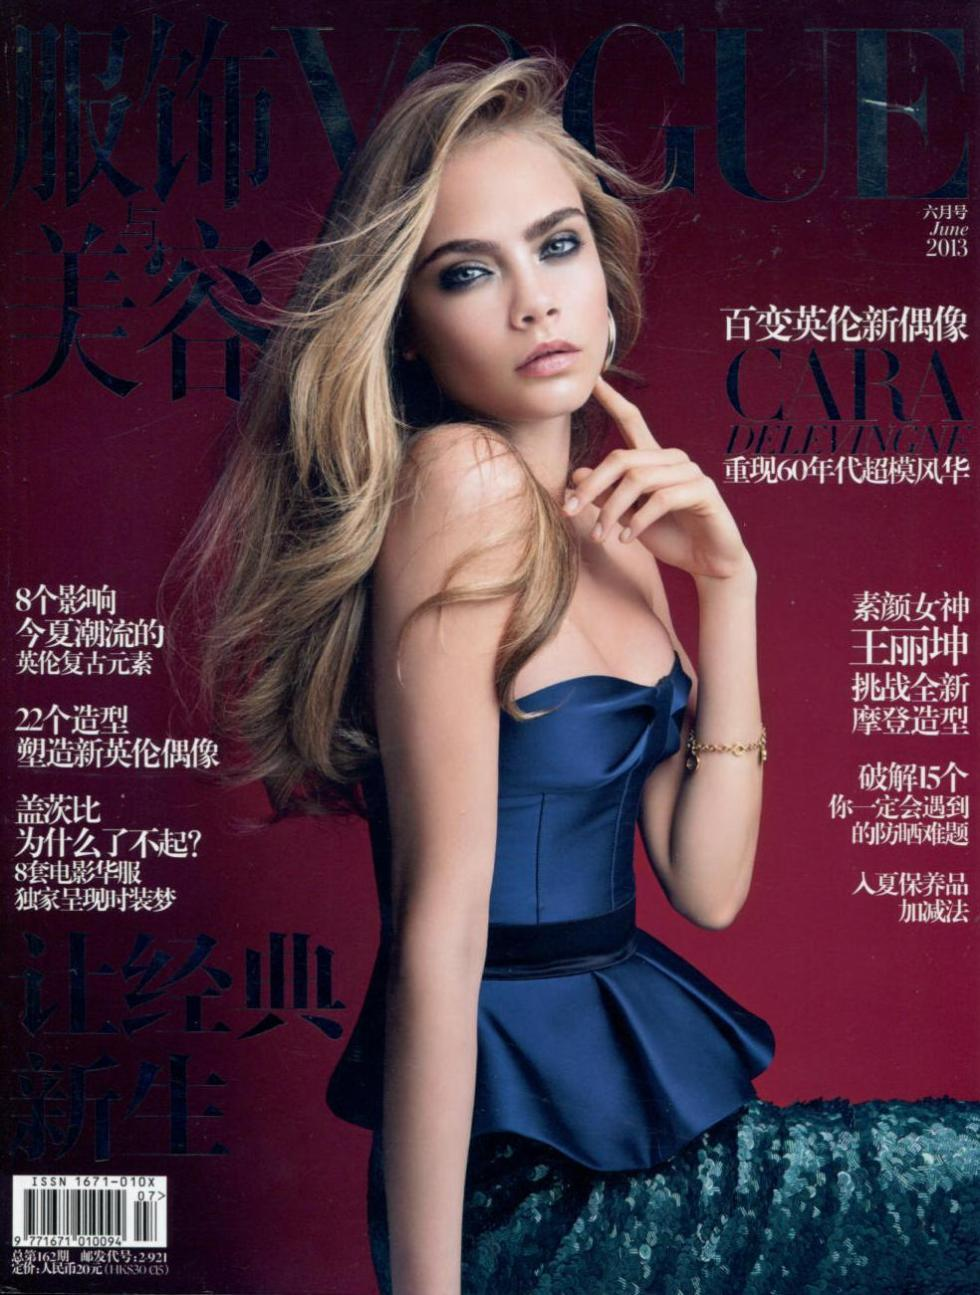 Vogue CHI 2013-6-1 Cover